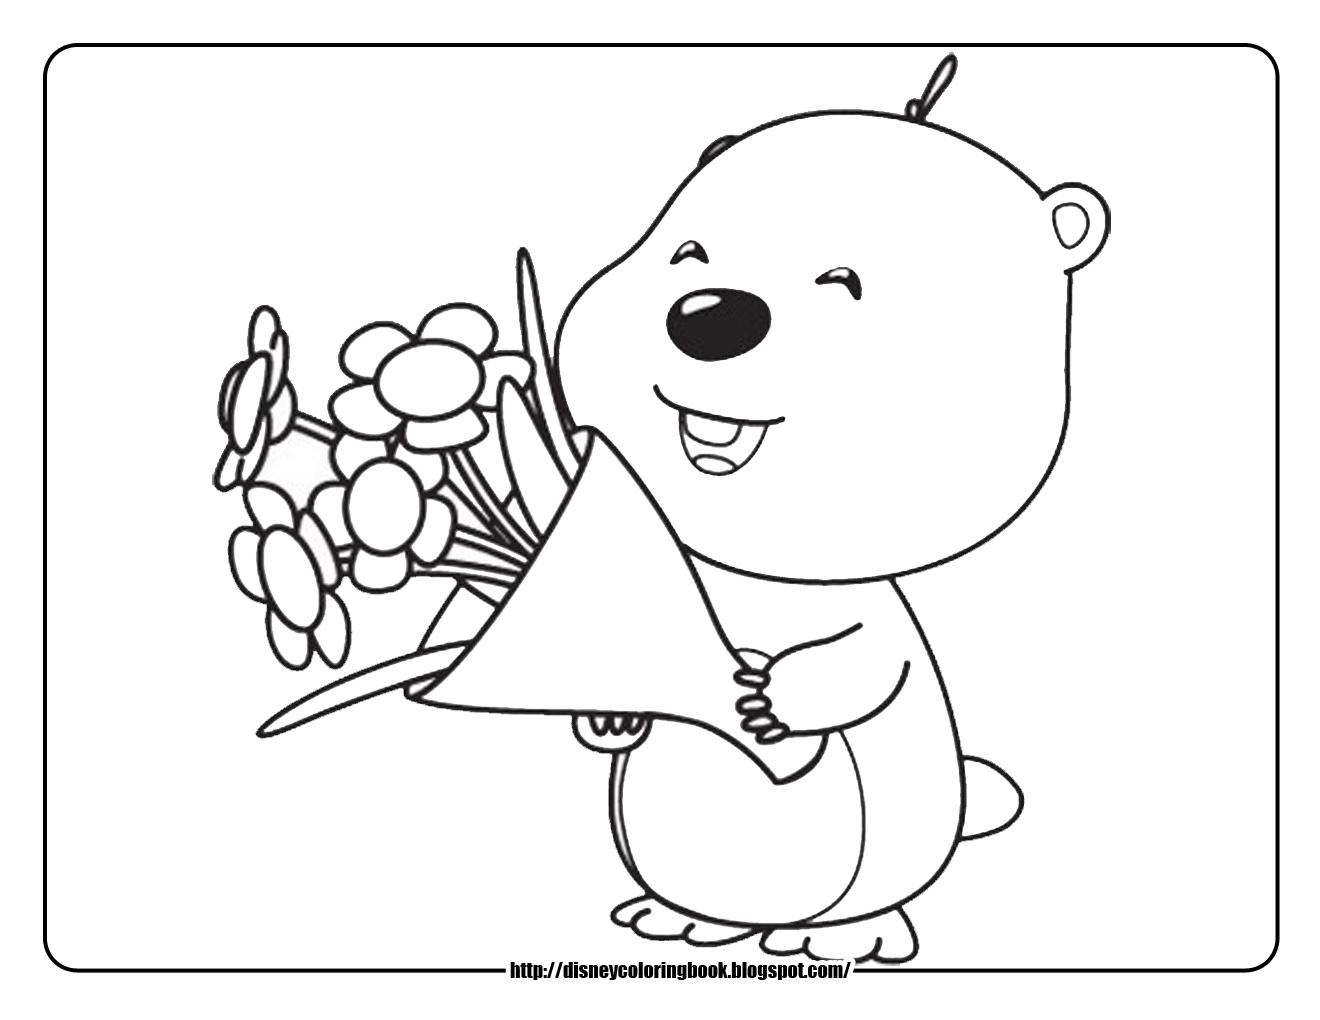 Pororo The Little Penguin Coloring Pages Loopy